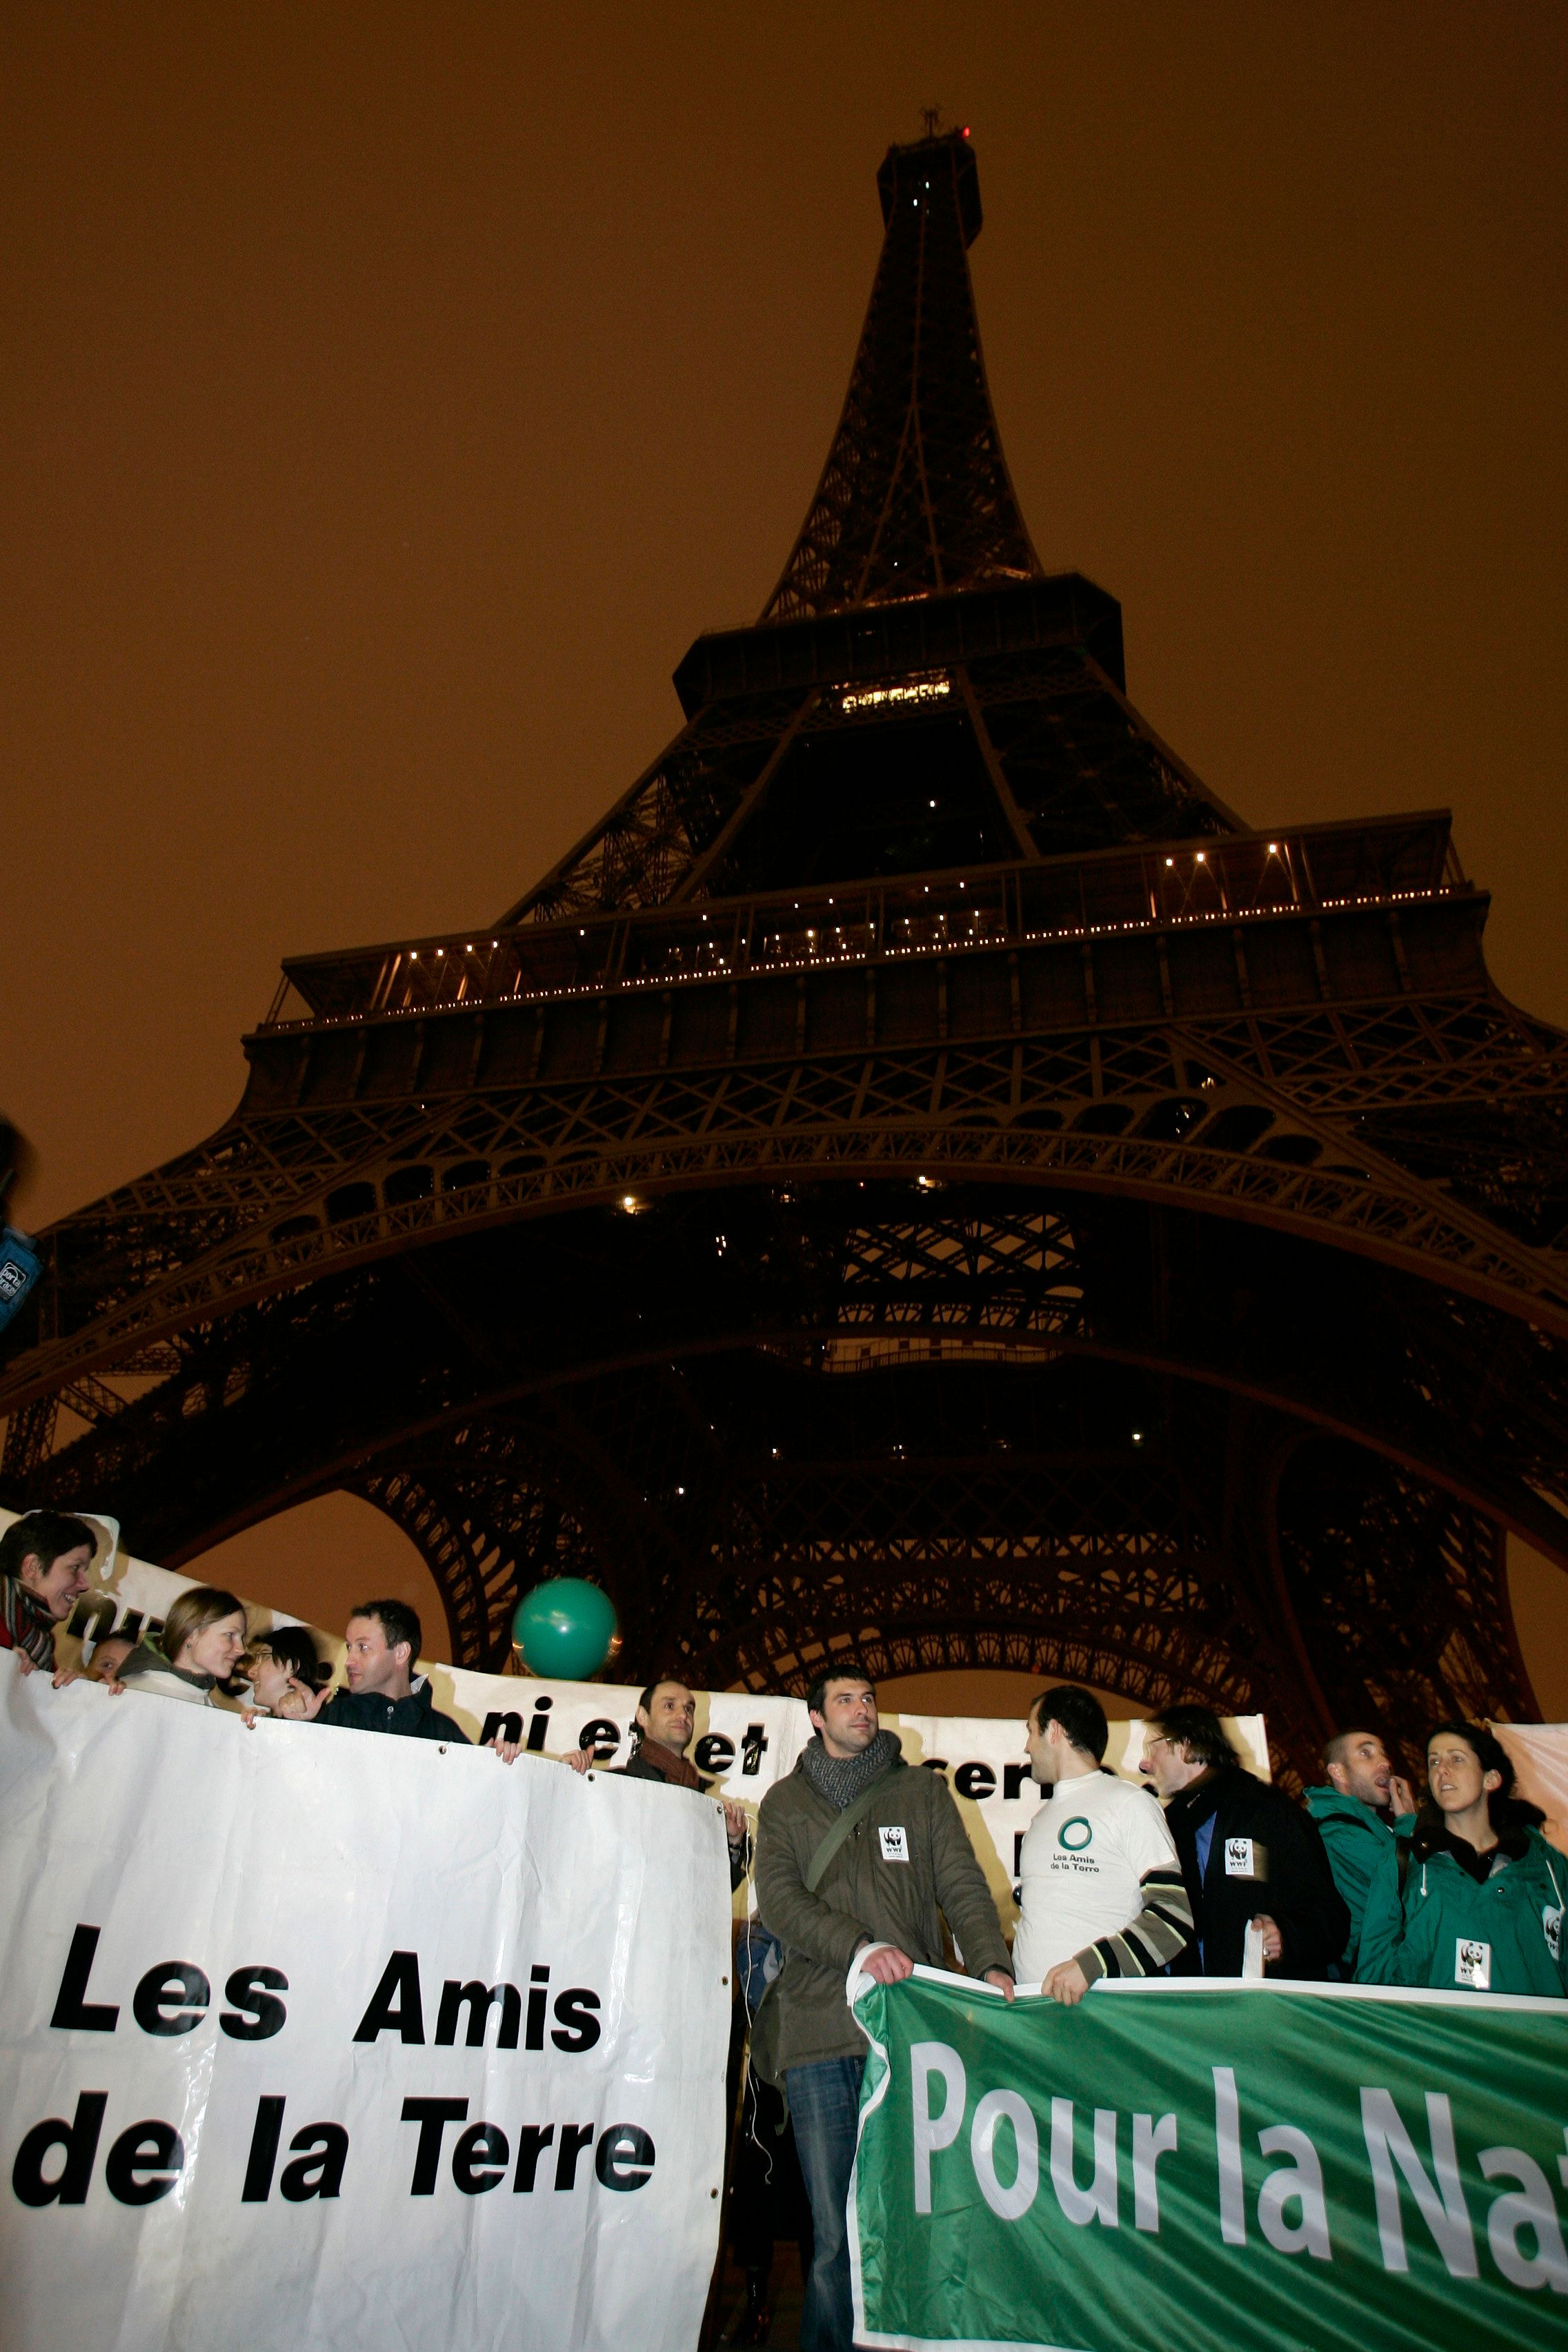 In 2007, the Eiffel Tower went dark as part of an